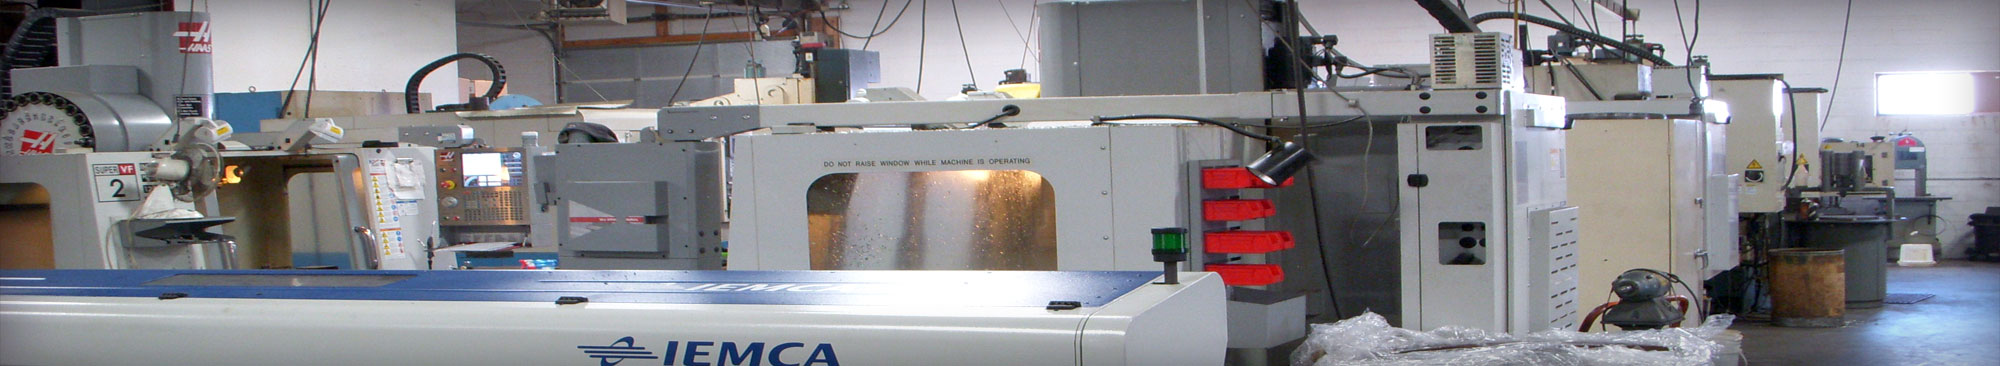 CNC Machines inside Quality Contours machining shop